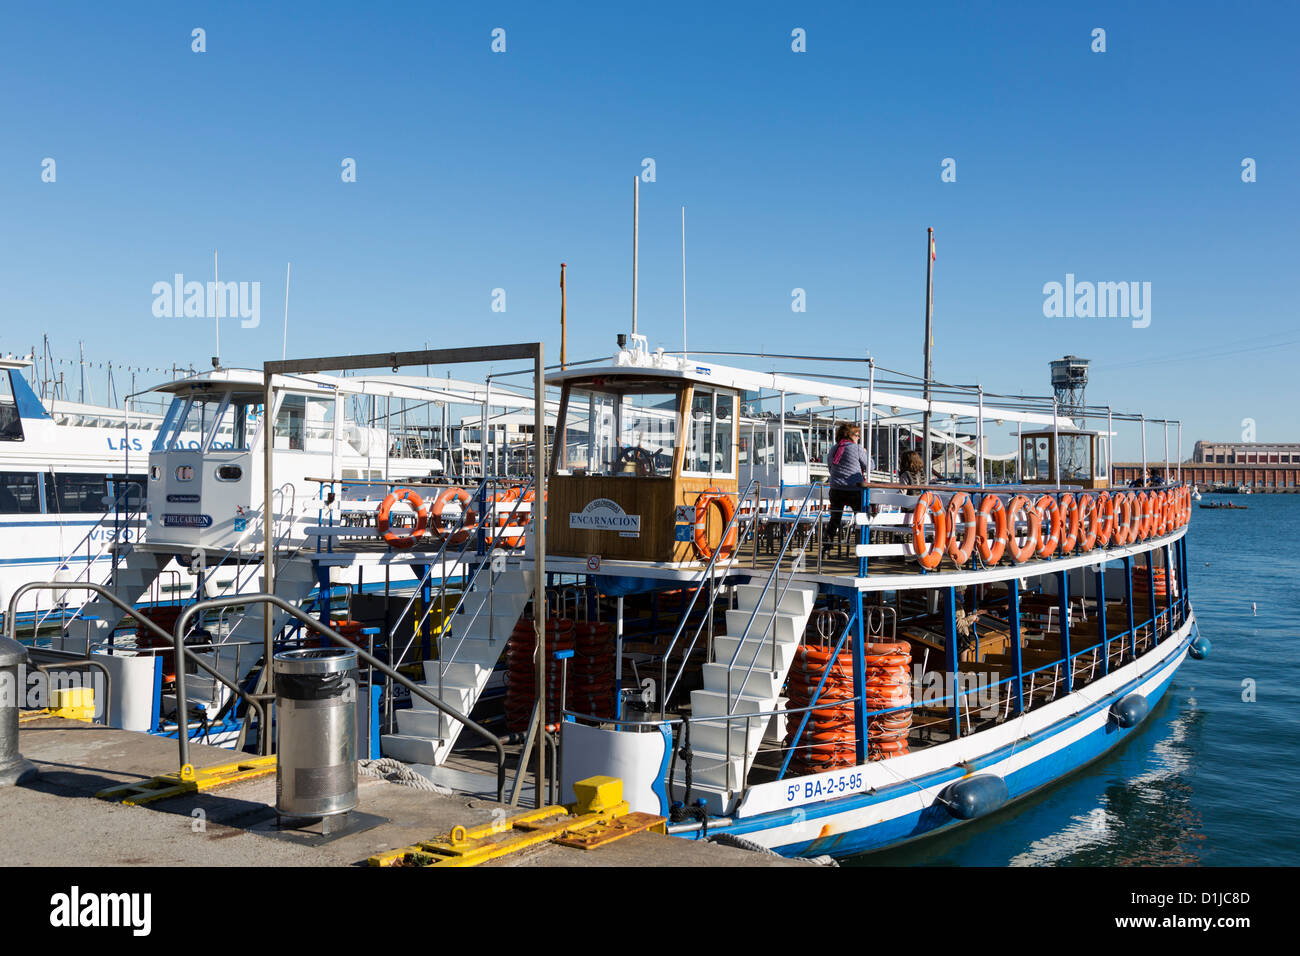 Excursion boat moored in Barcelona's Port Vell - Stock Image